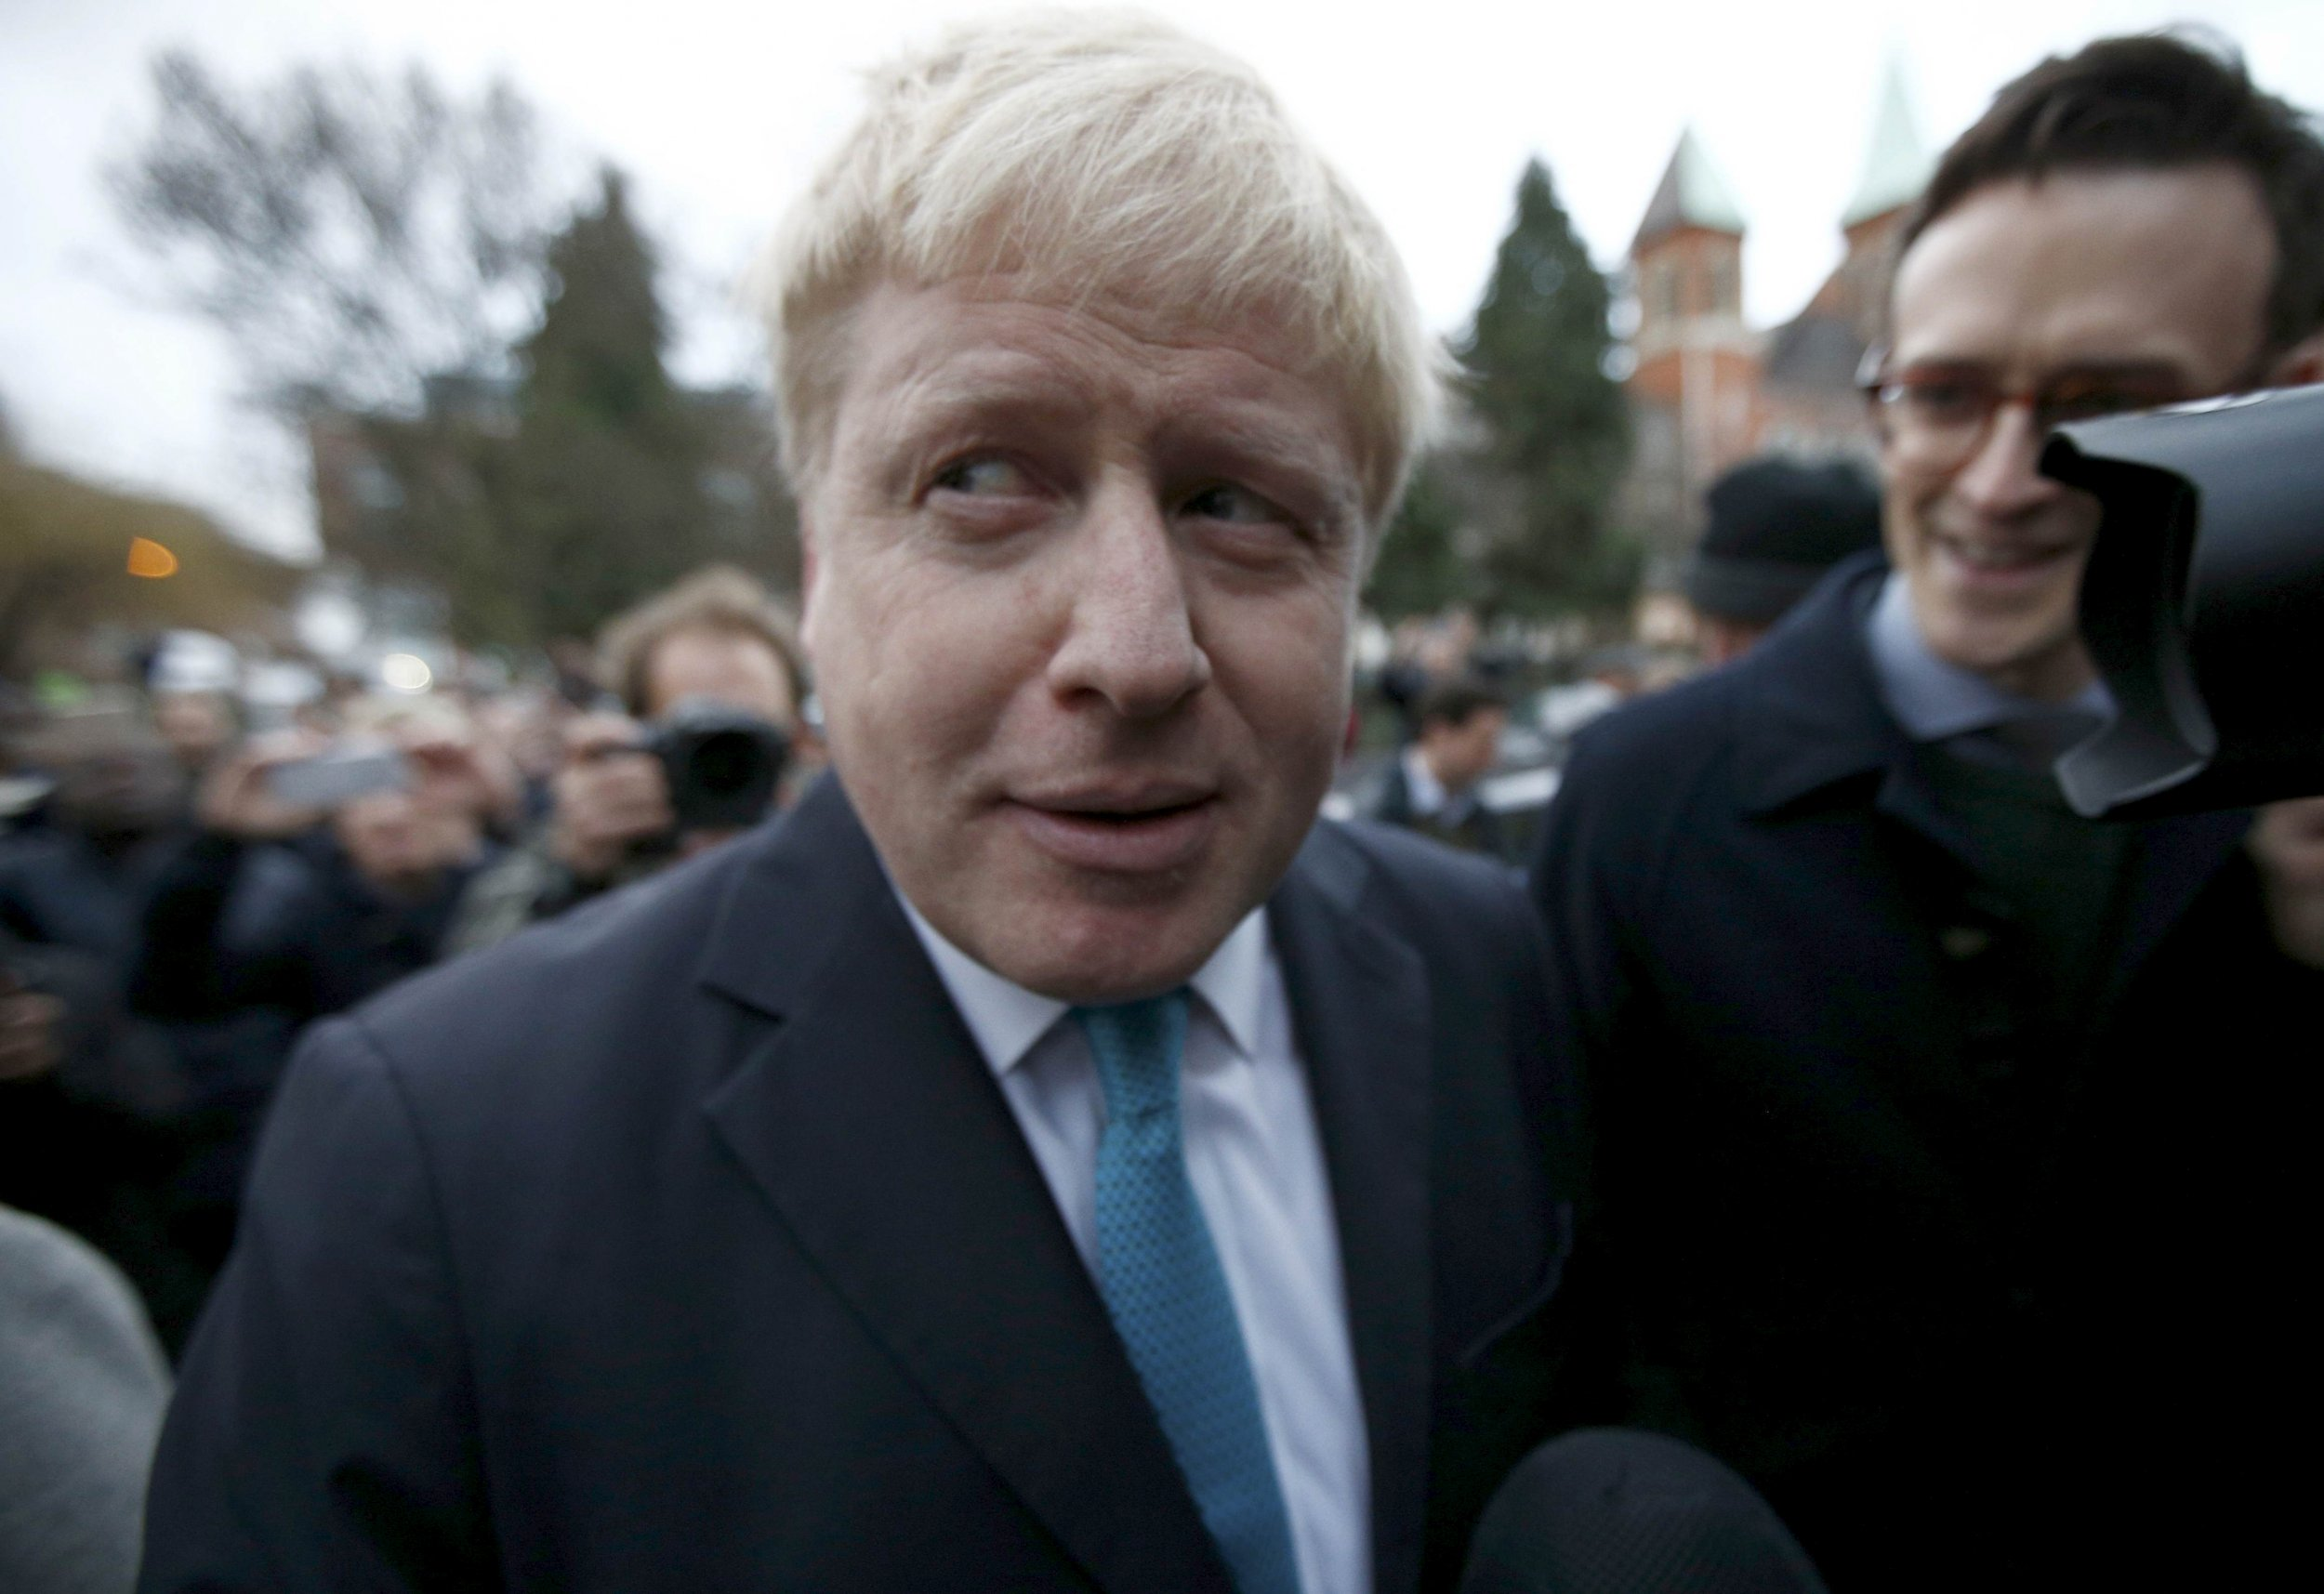 03_23_Boris_Johnson_01